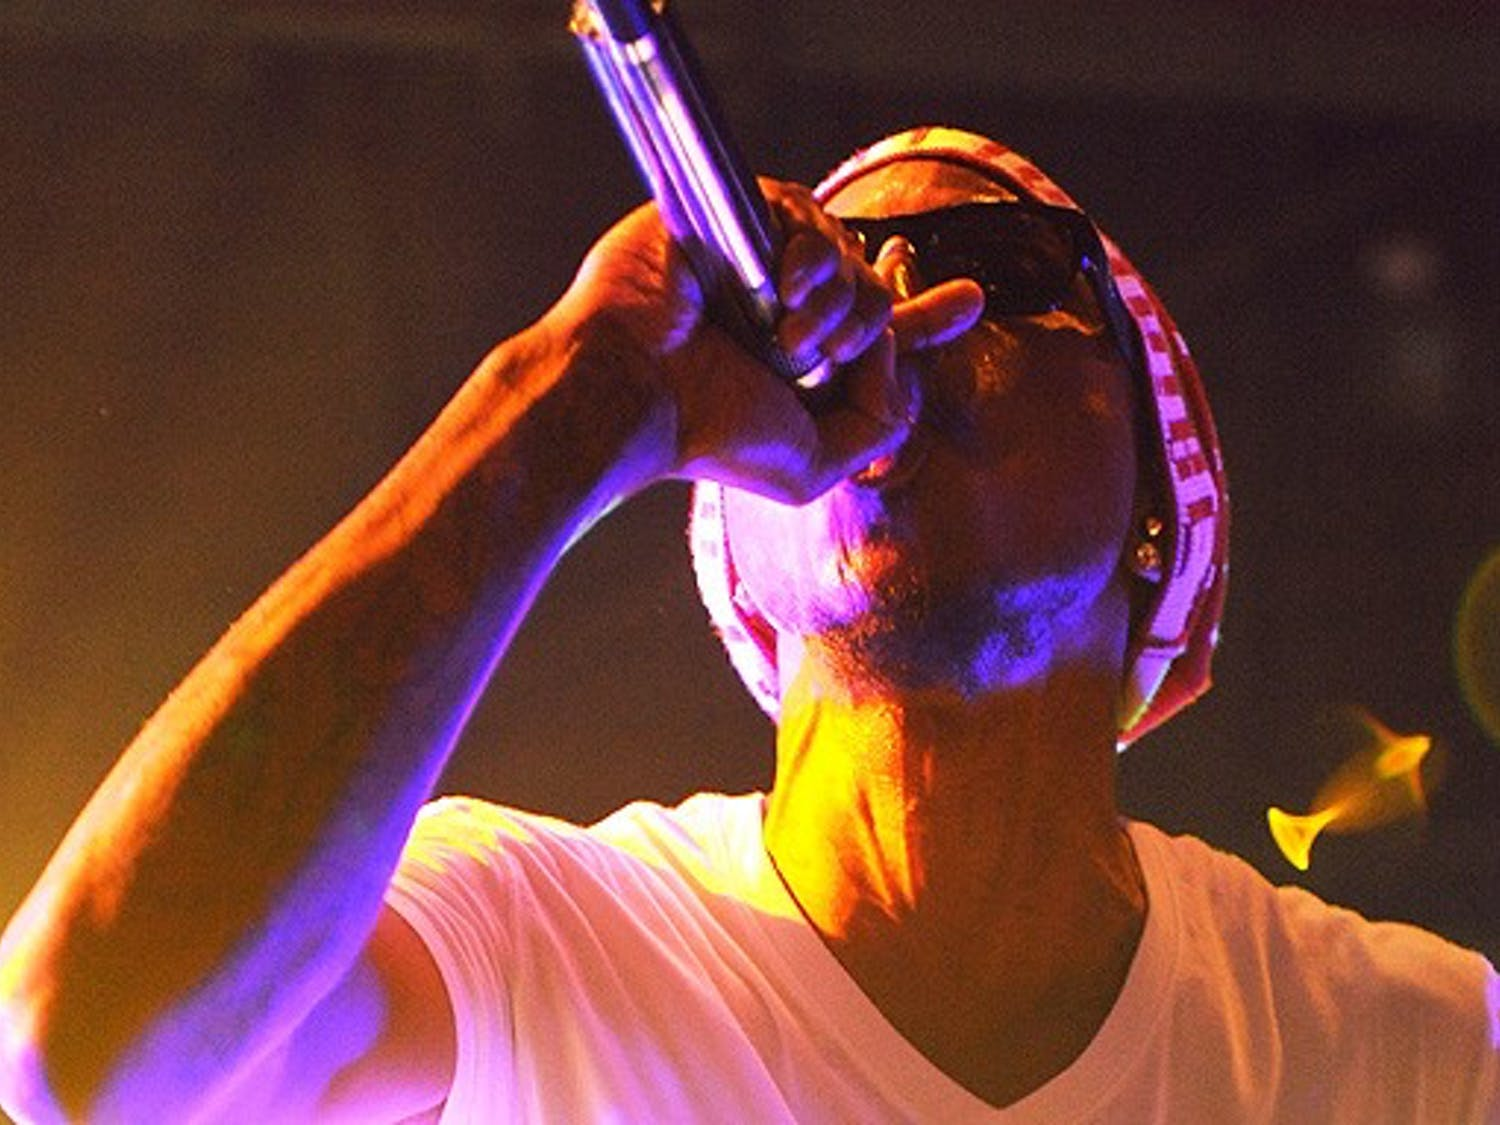 Pharell Williams, of the hip-hop group N.E.R.D. performs in Cameron Indoor Stadium Thursday night. Kid Cudi also performed as part of Cameron Rocks.